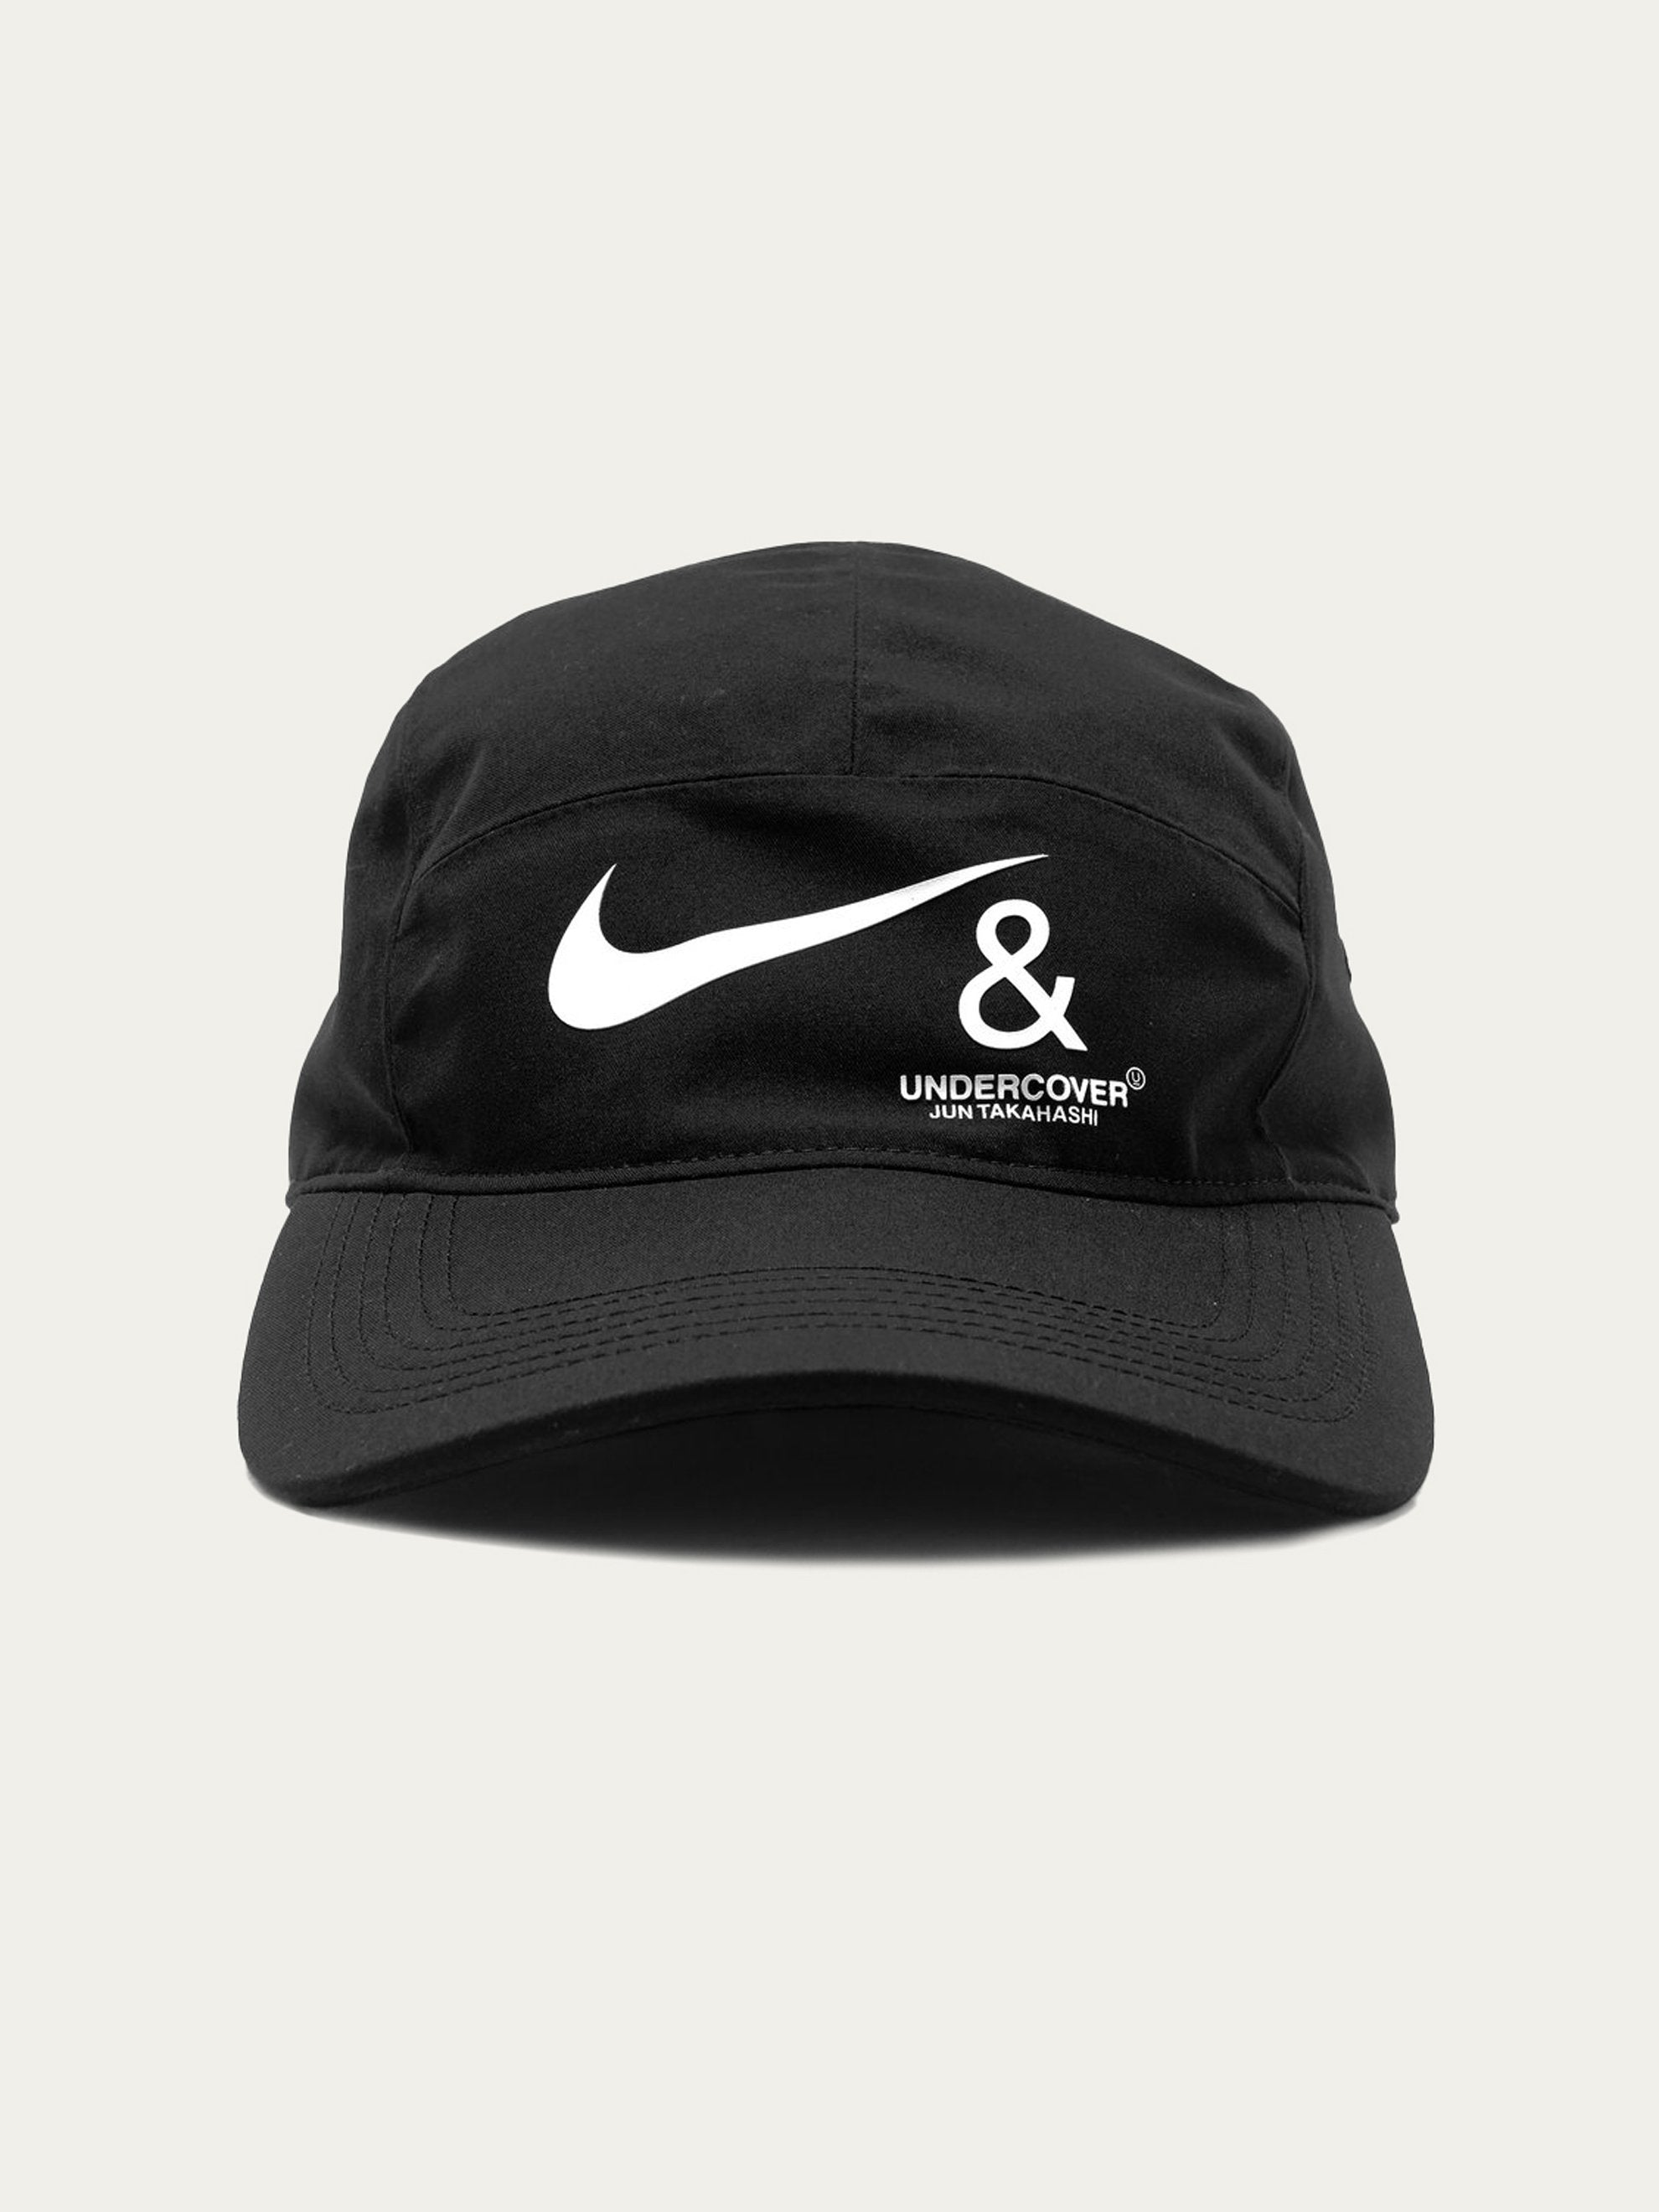 Nike x Undercover AW84 Sport Cap